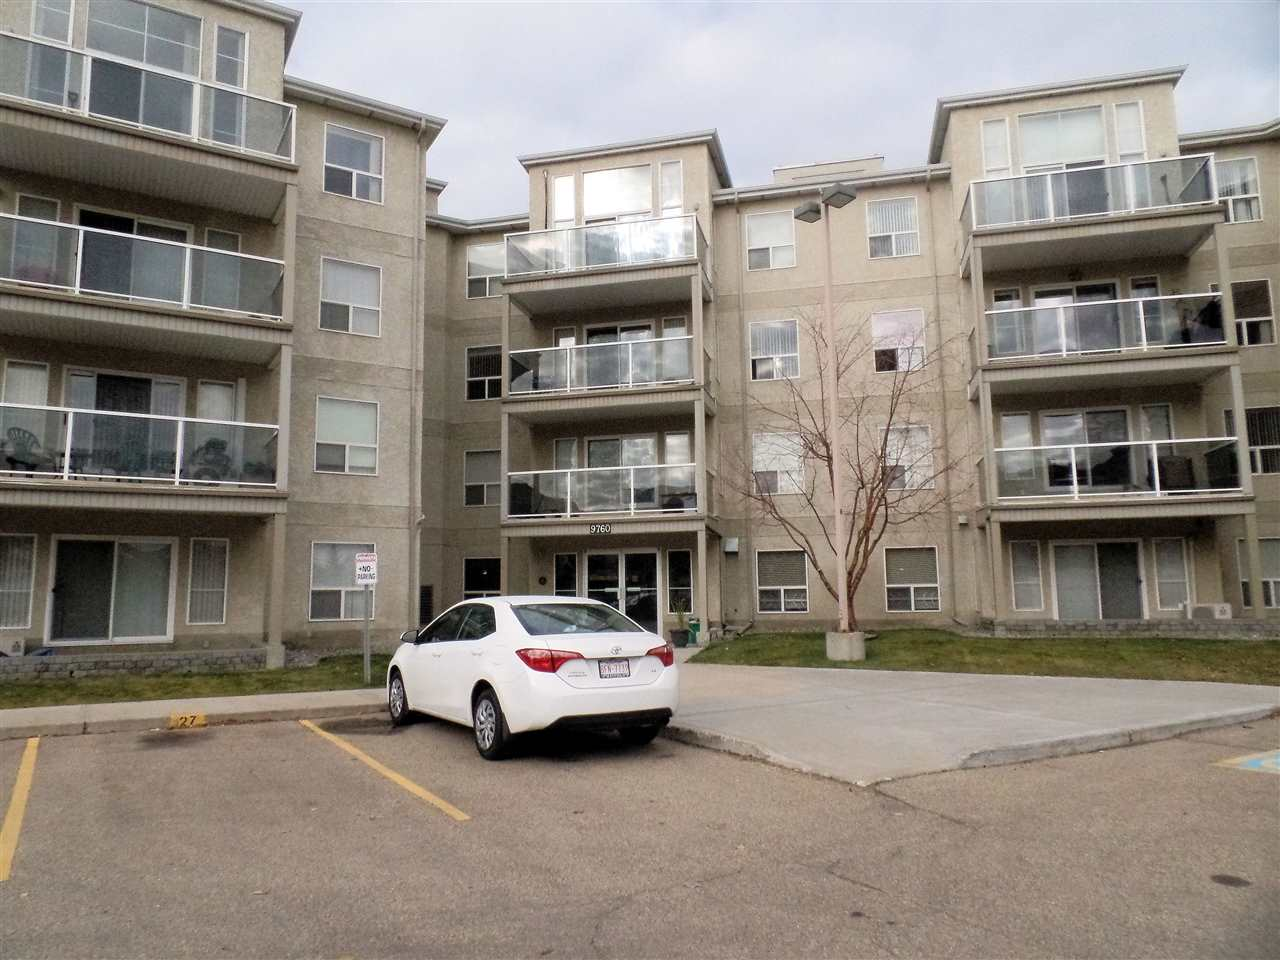 Main Photo: #210 9760 174 ST NW in Edmonton: Zone 20 Condo for sale : MLS® # E4042458